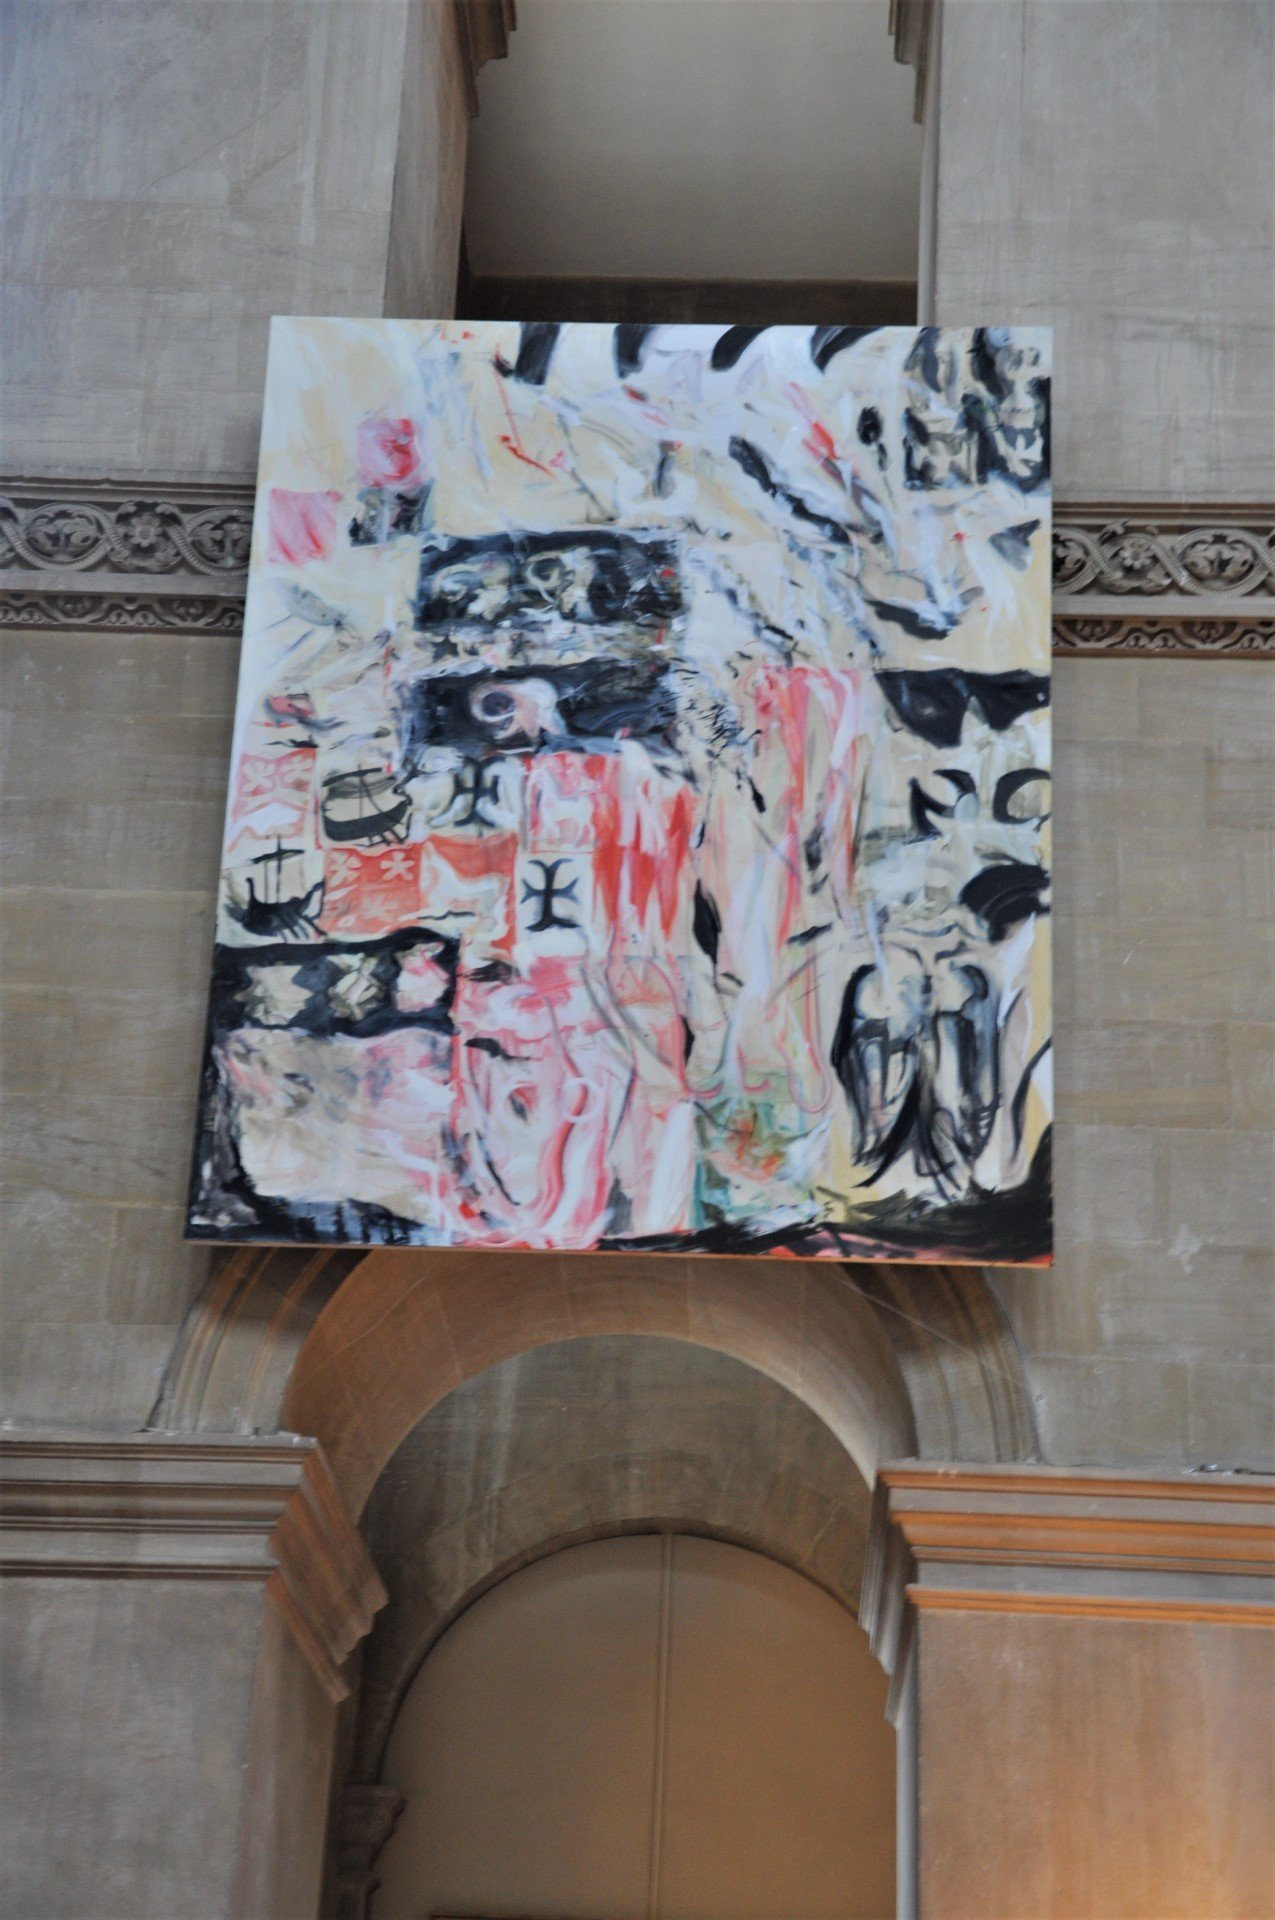 Cecily Brown, Armorial Memorial, 2019, oil on linen, 307.3 x 246.4cm